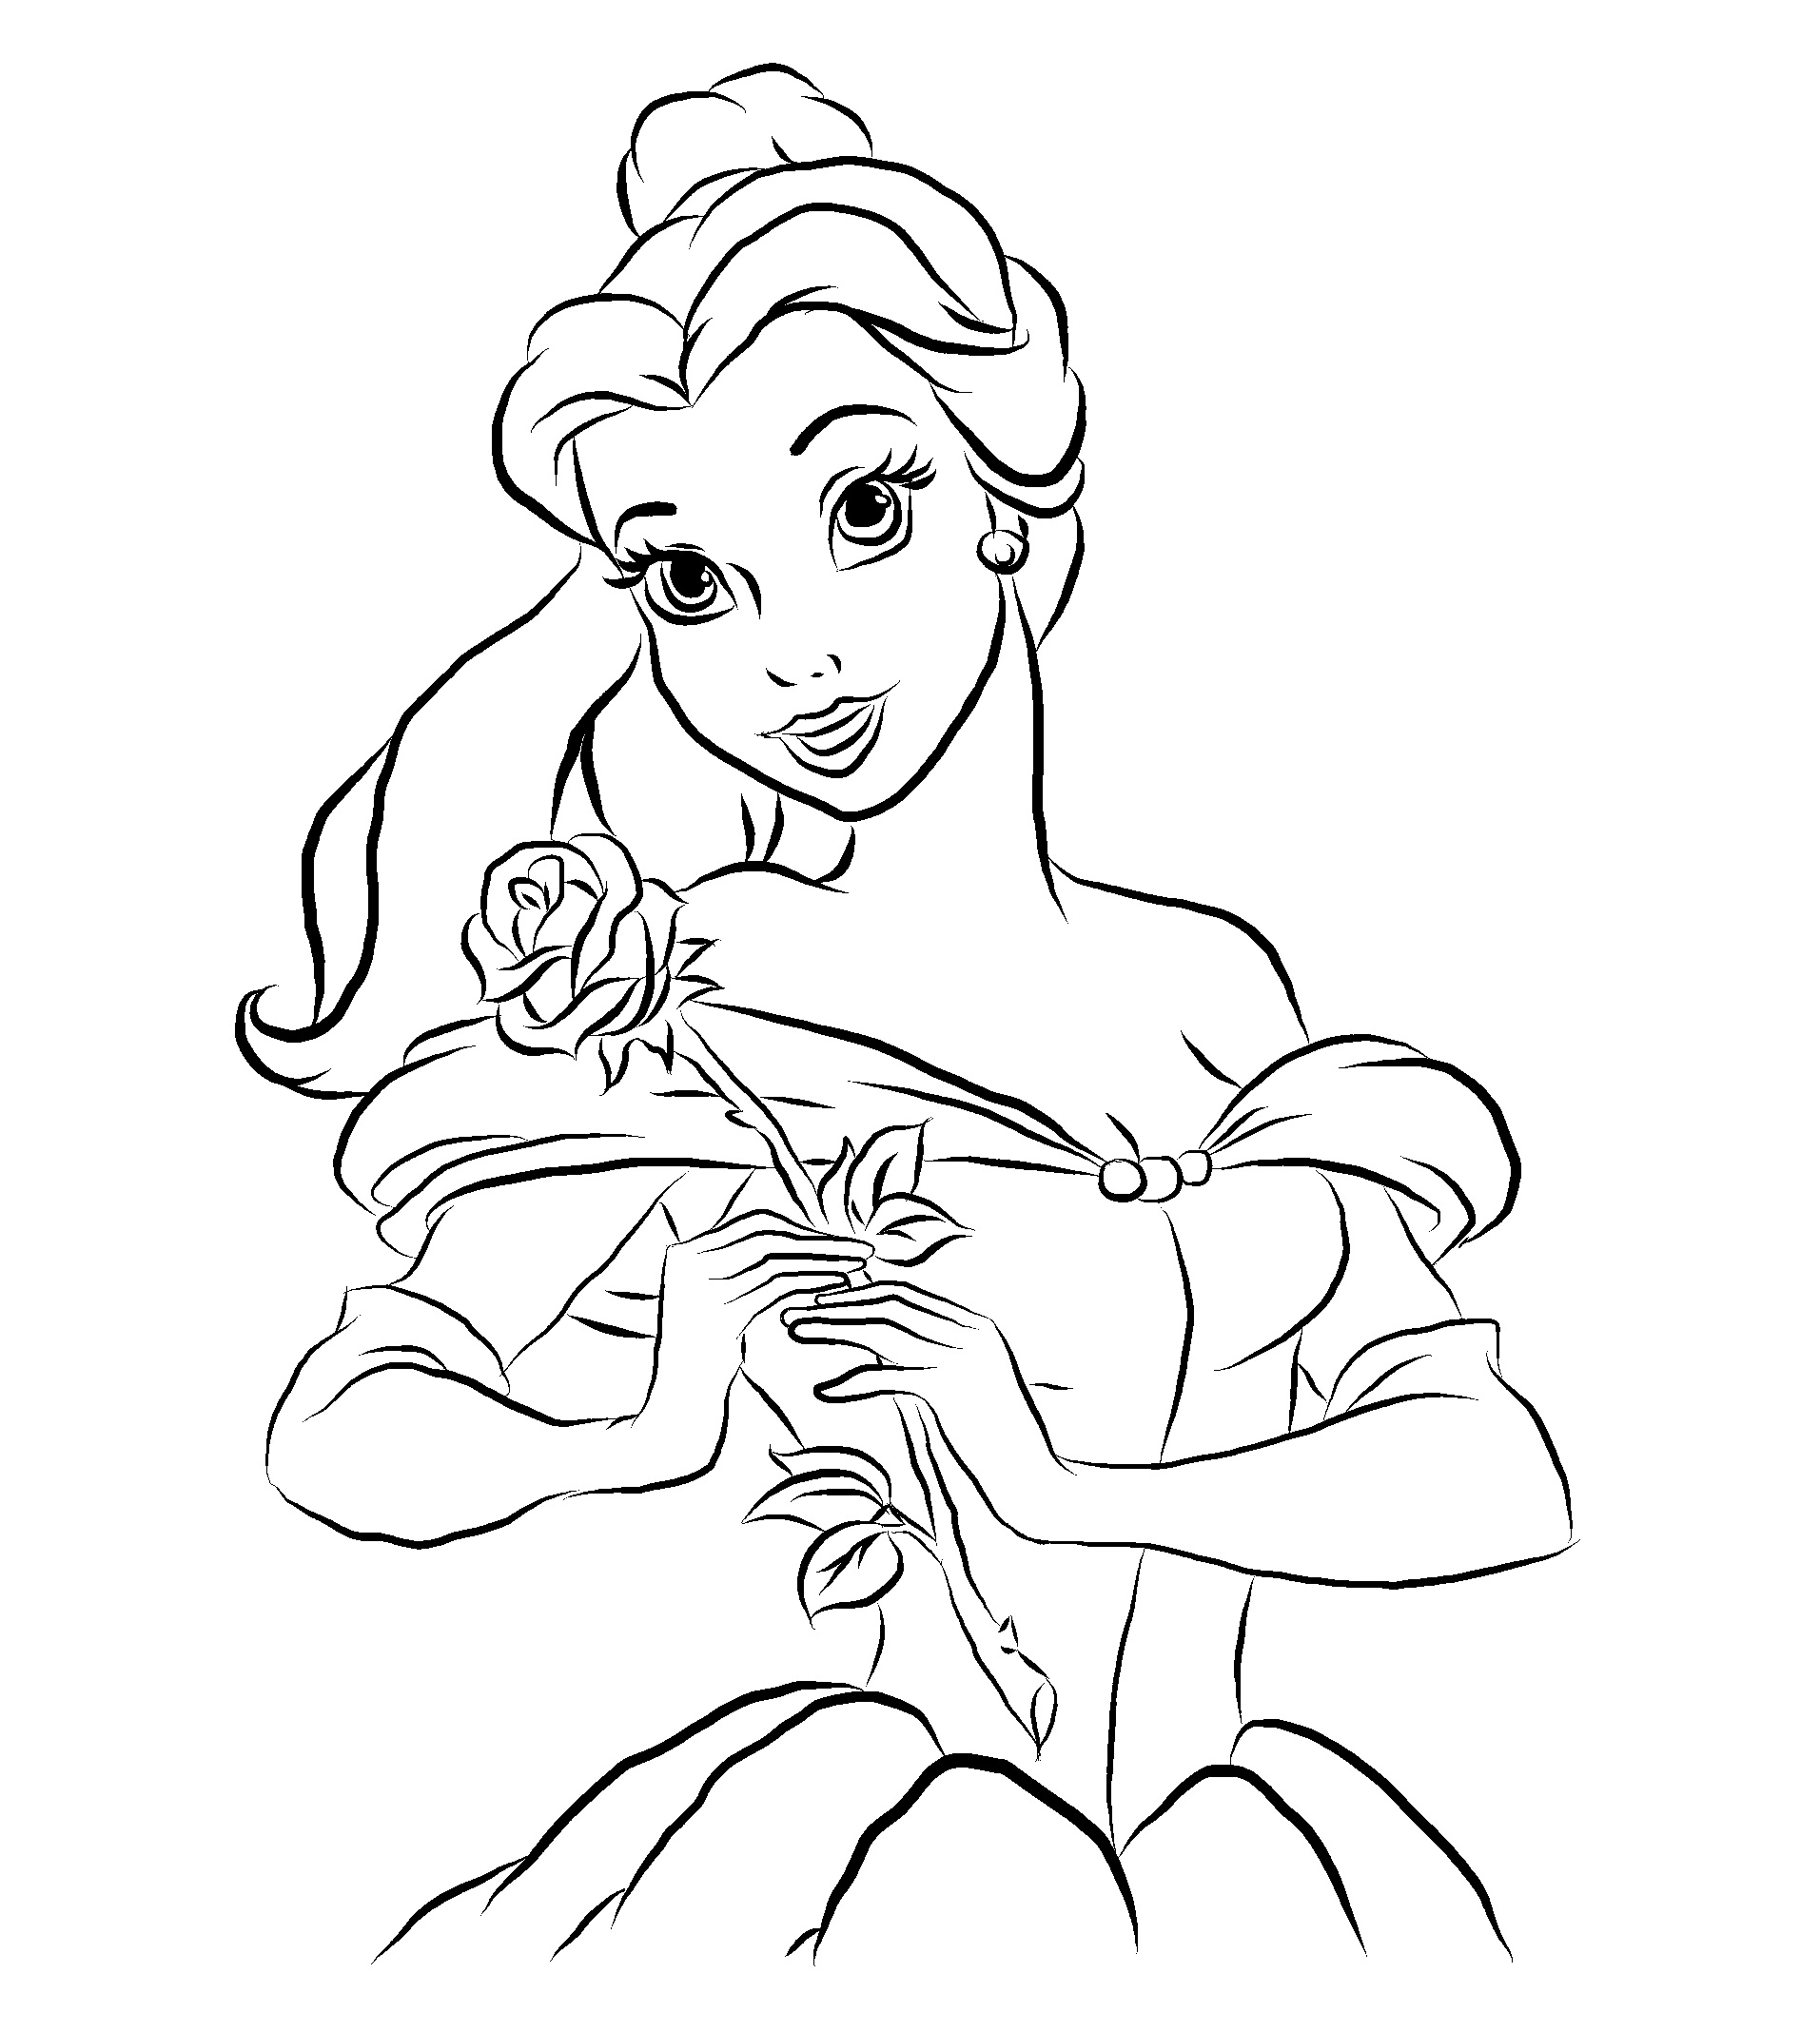 belle drawing 30 day art challenge days 11 14 belle rebecca39s drawing drawing belle